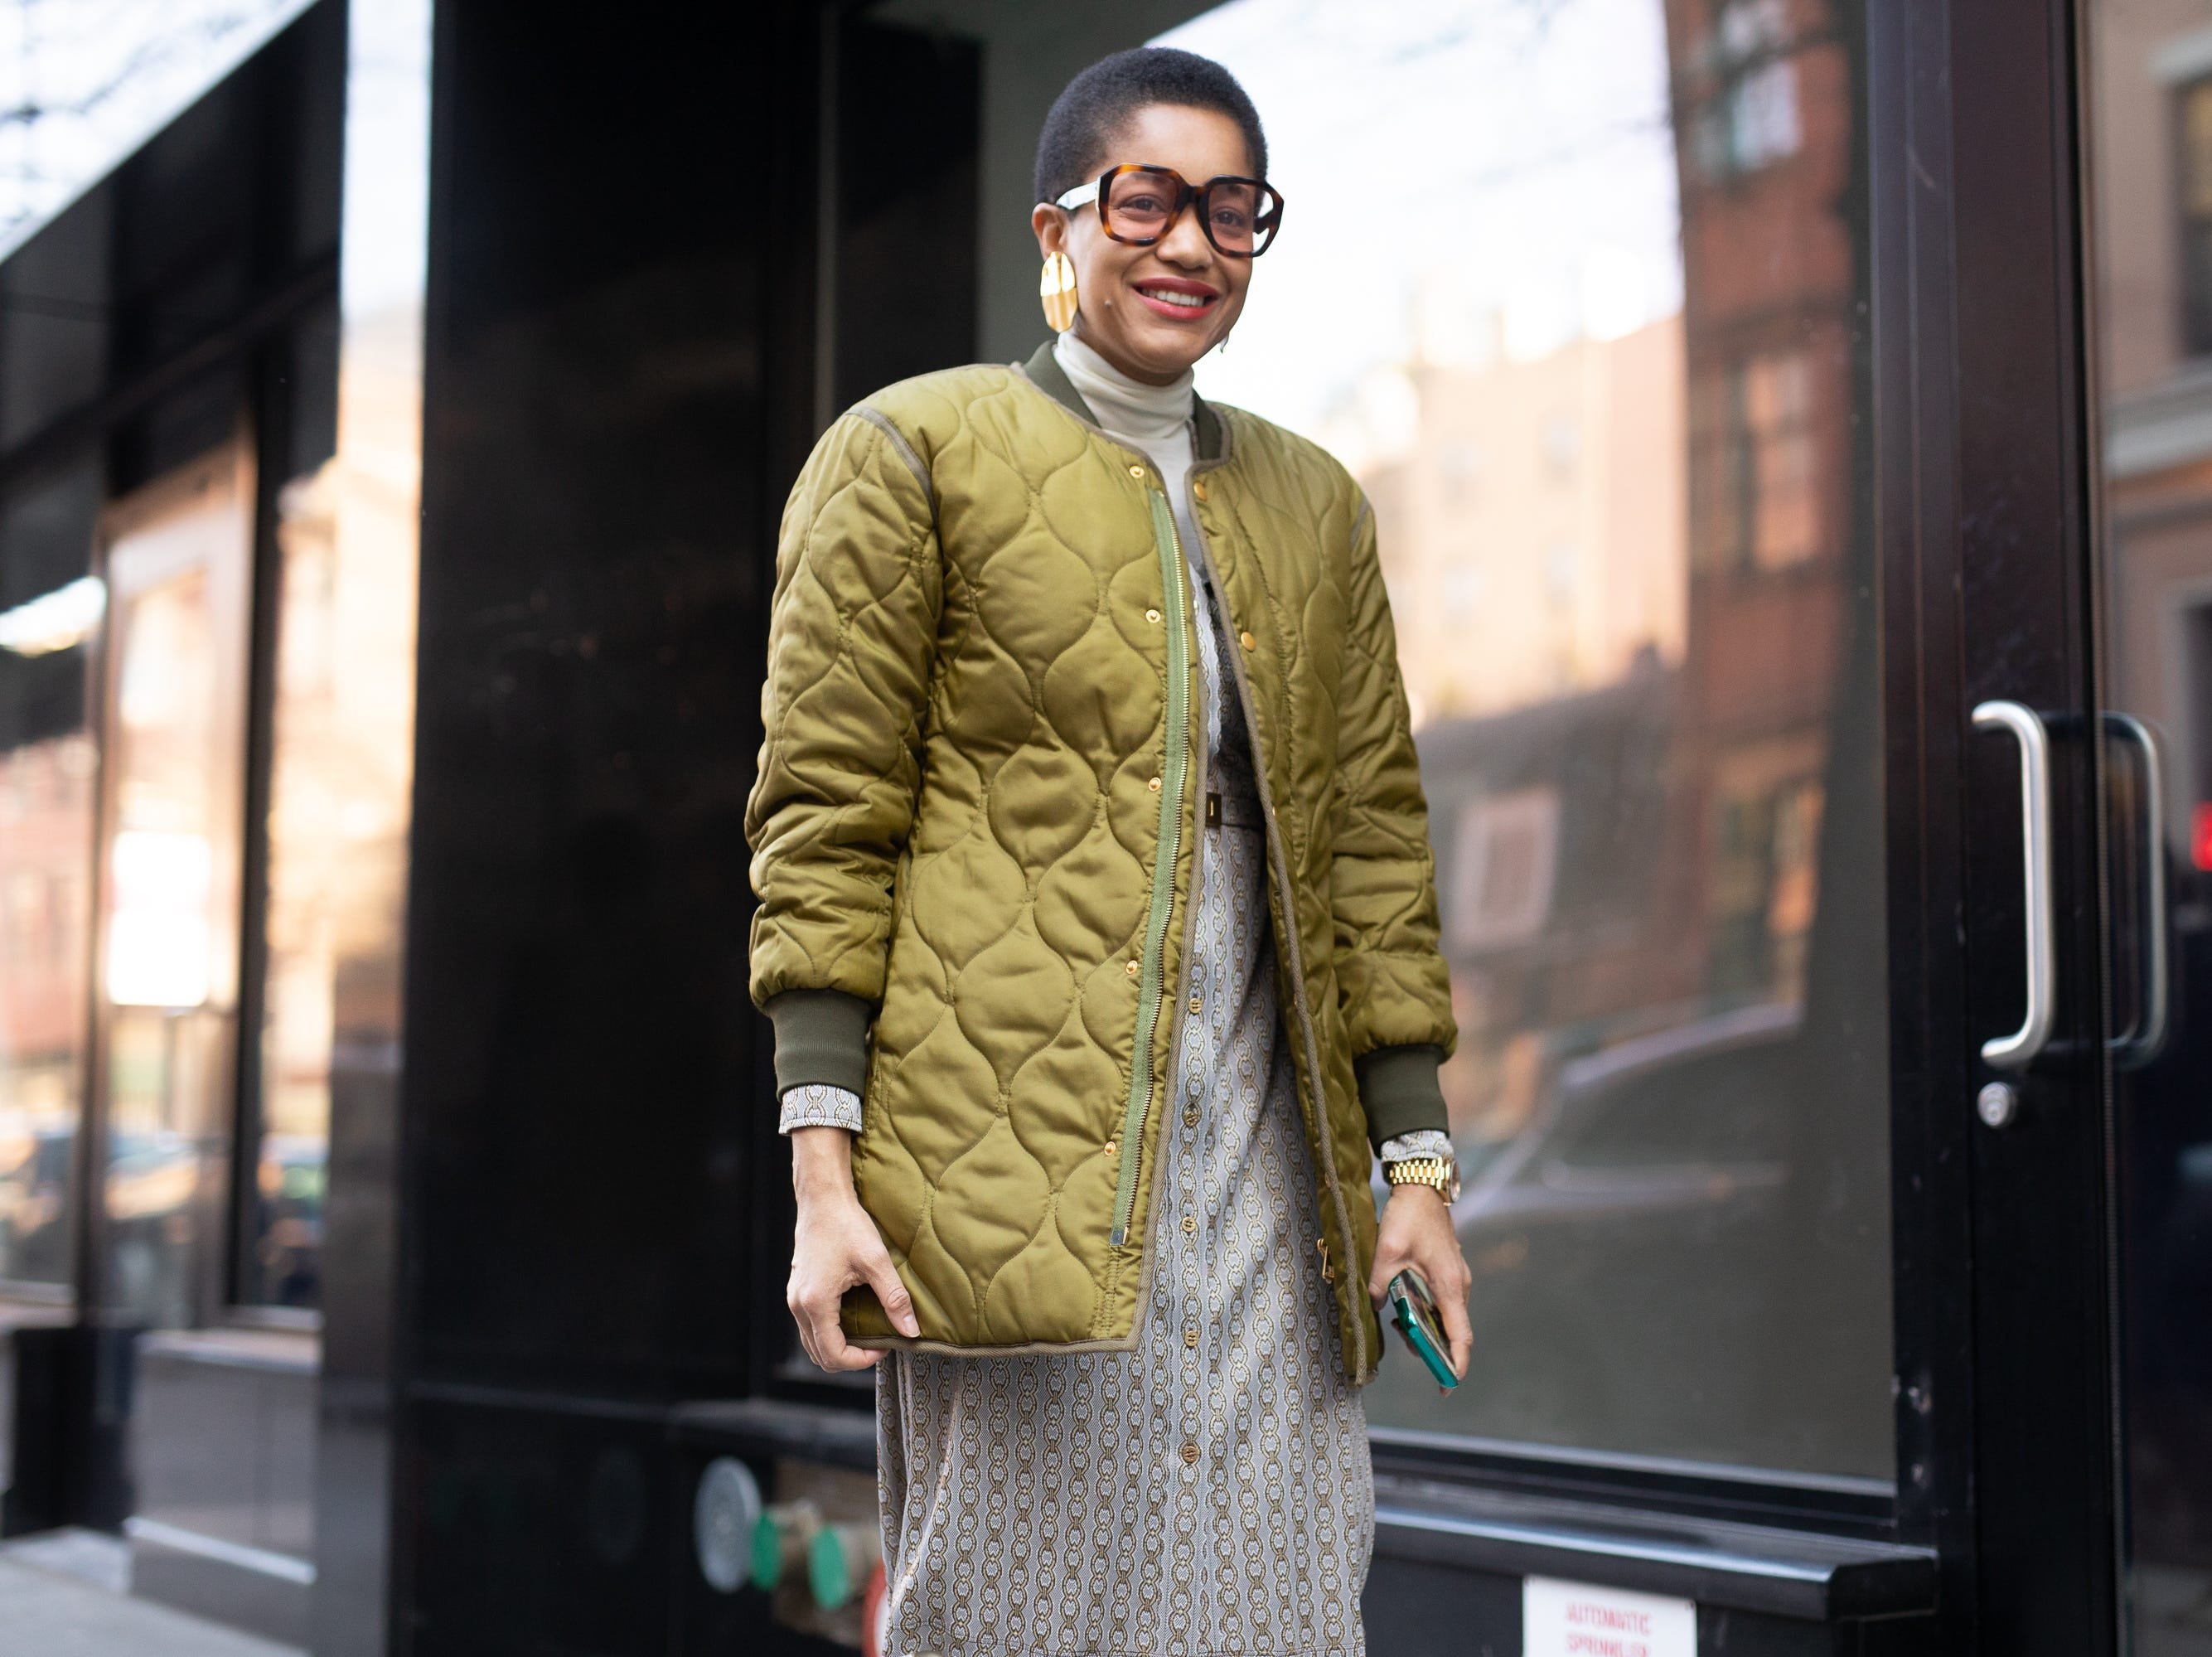 Tamu McPherson is seen on the street during New York Fashion Week AW19 wearing quilted pea green coat with grey dress on February 10, 2019 in New York City.